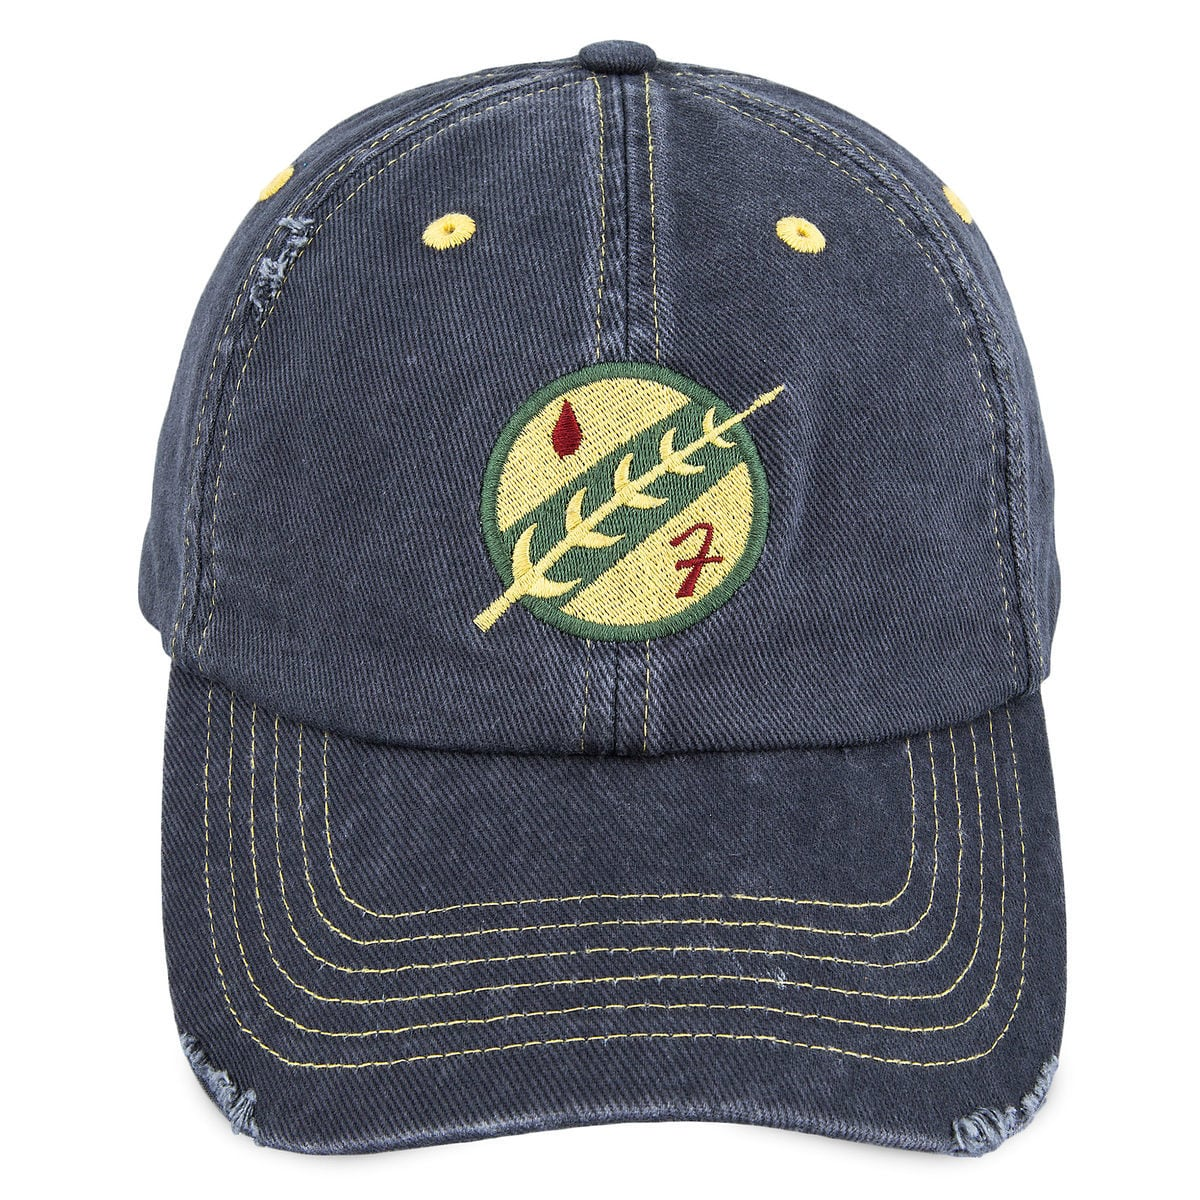 e8d59f01a93 Product Image of Boba Fett Baseball Cap for Adults - Star Wars   1